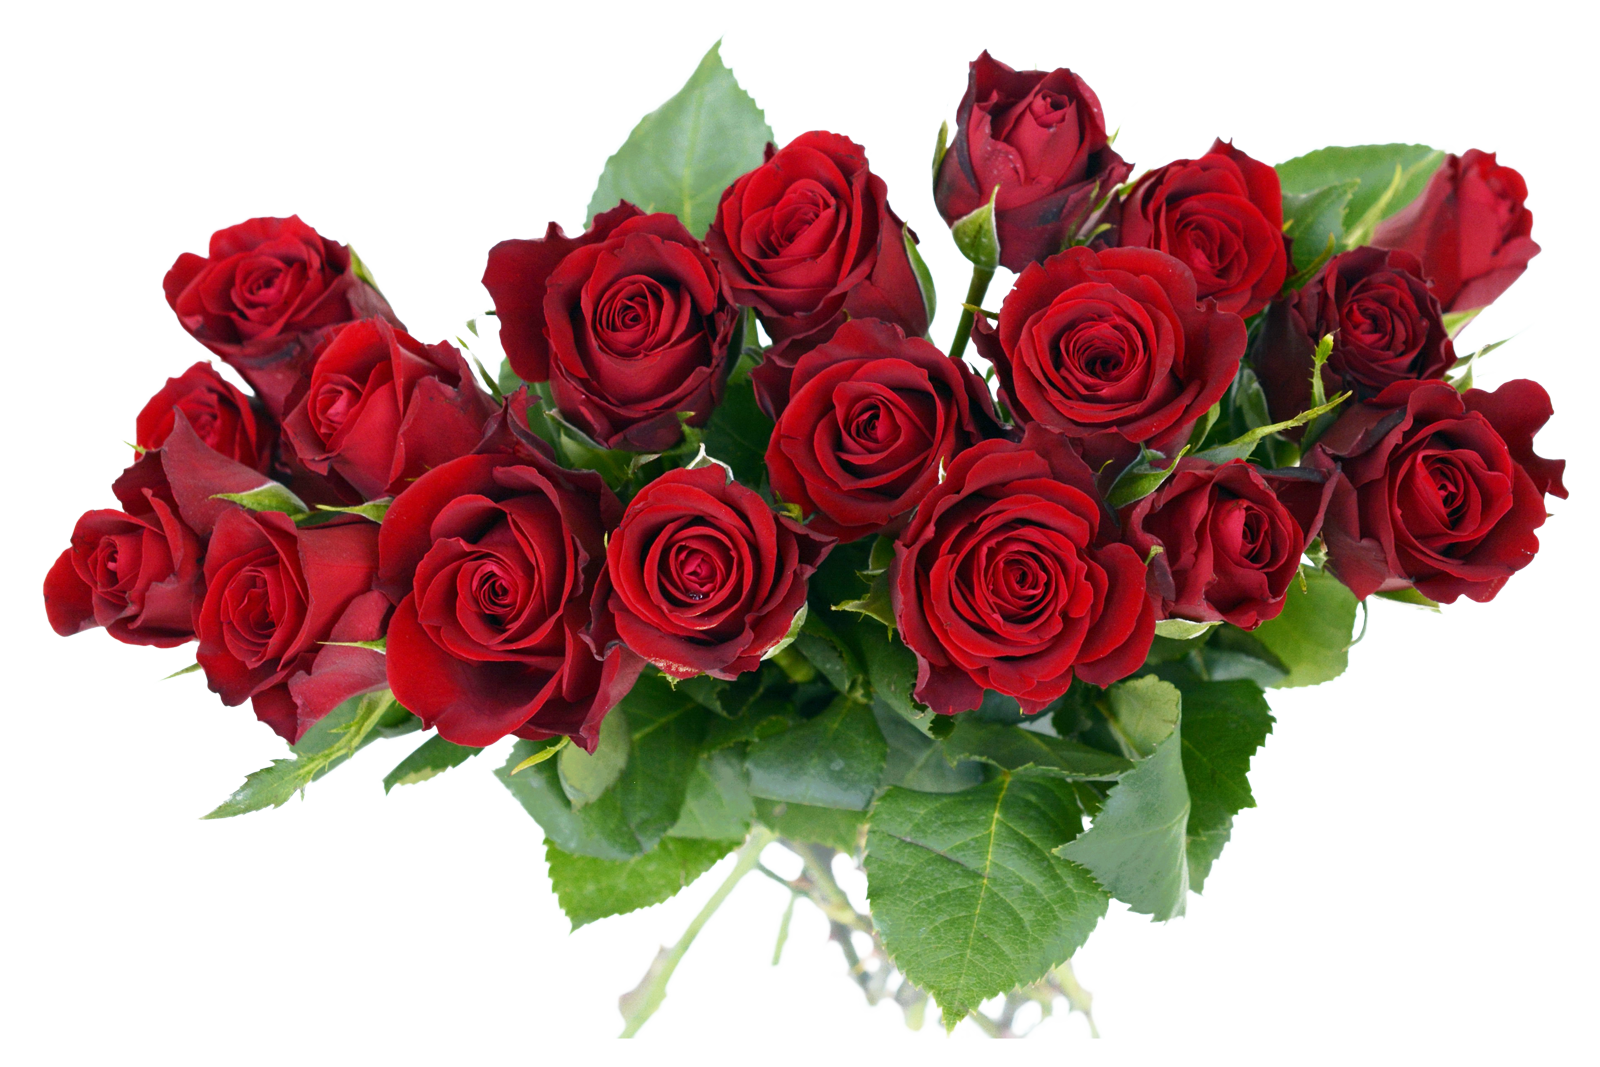 Rose bouquet image purepng. Flower bunch png